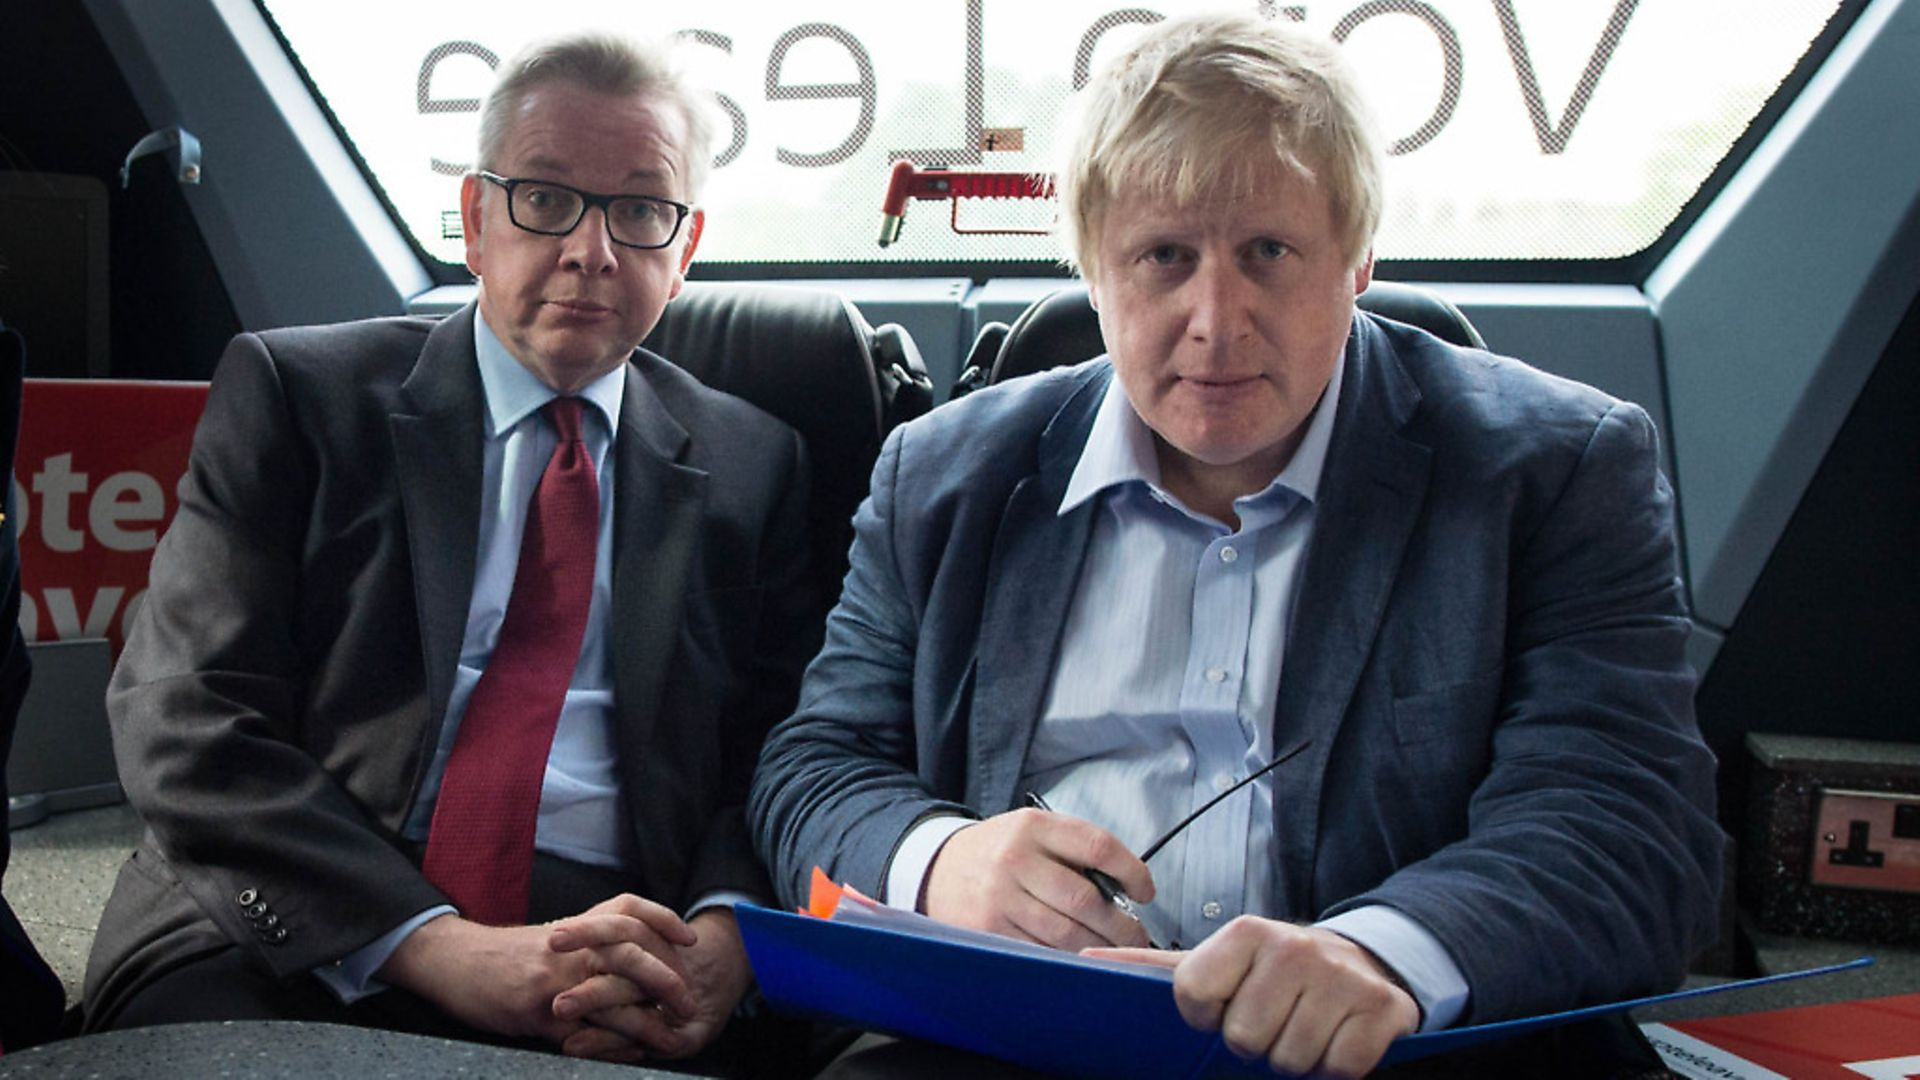 Michael Gove and Boris Johnson on the Vote Leave campaign bus. The two have recently rekindled their friendship. Photo: Stefan Rousseau - Credit: PA Wire/PA Images